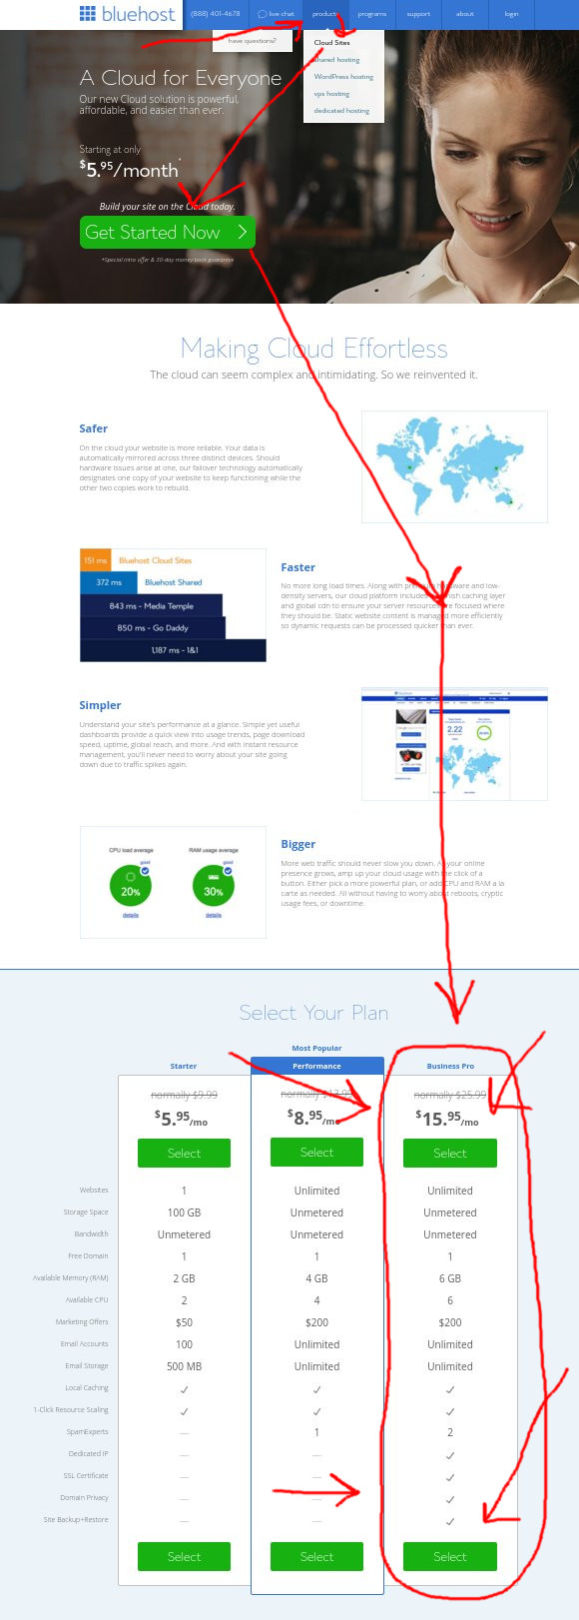 How to get awesome hosting from Bluehost